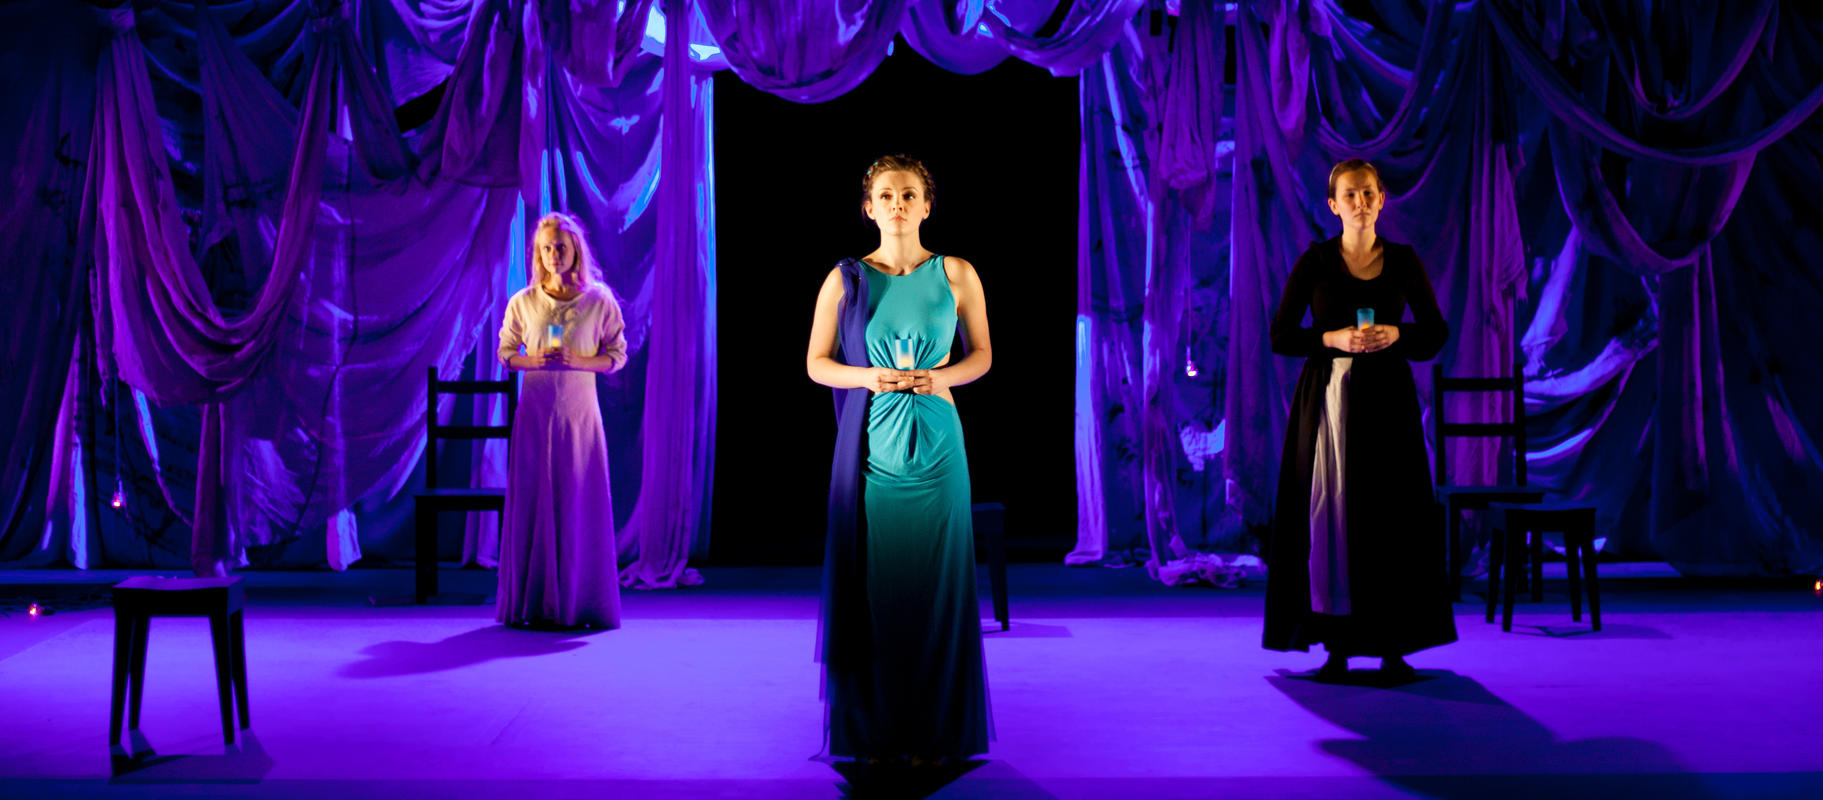 Photograph from The Rape of Lucretia - lighting design by Jake Wiltshire